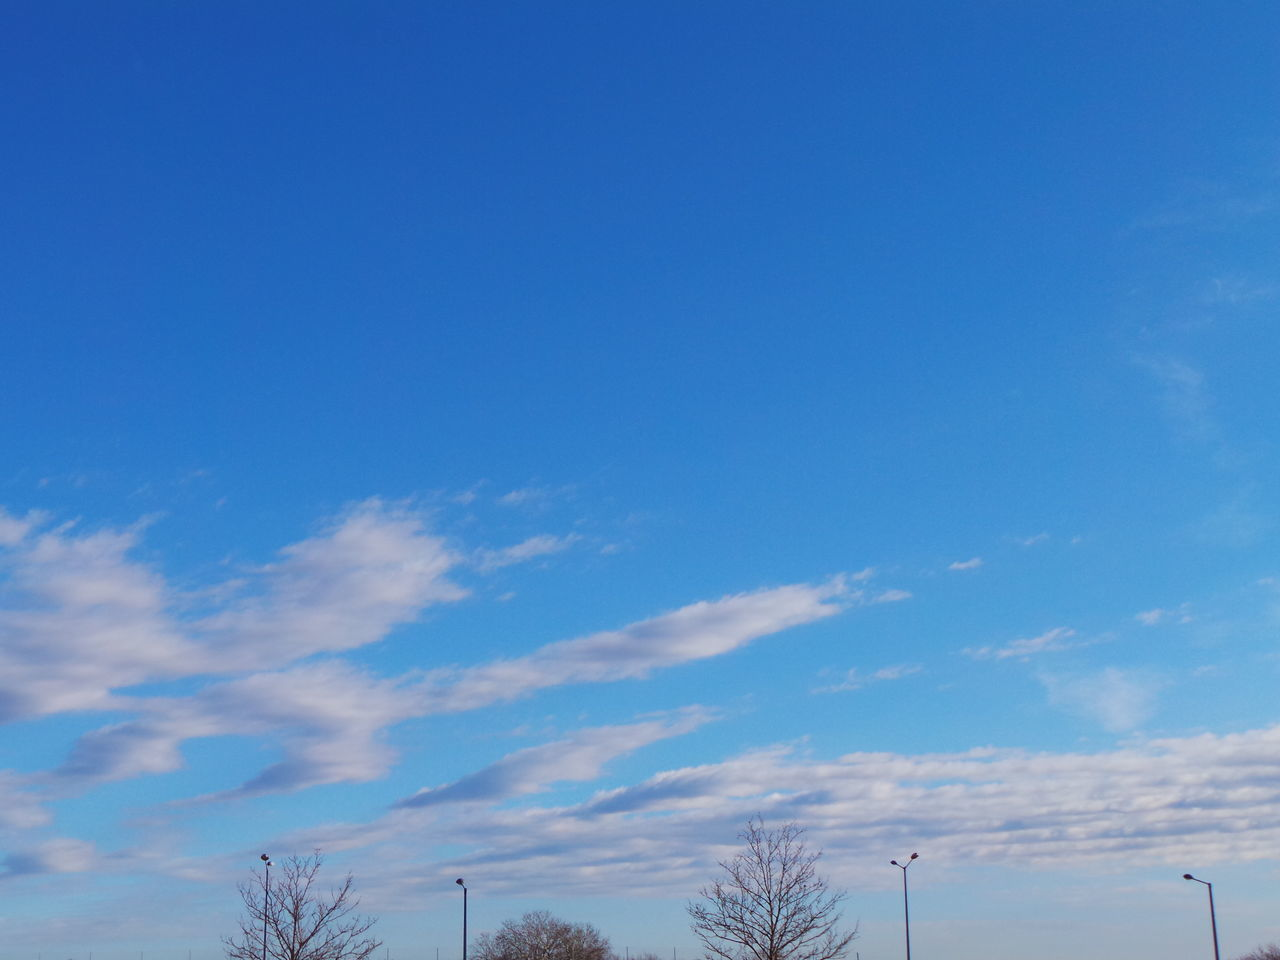 blue, low angle view, sky, beauty in nature, nature, tranquility, day, tree, no people, scenics, outdoors, tranquil scene, contrail, vapor trail